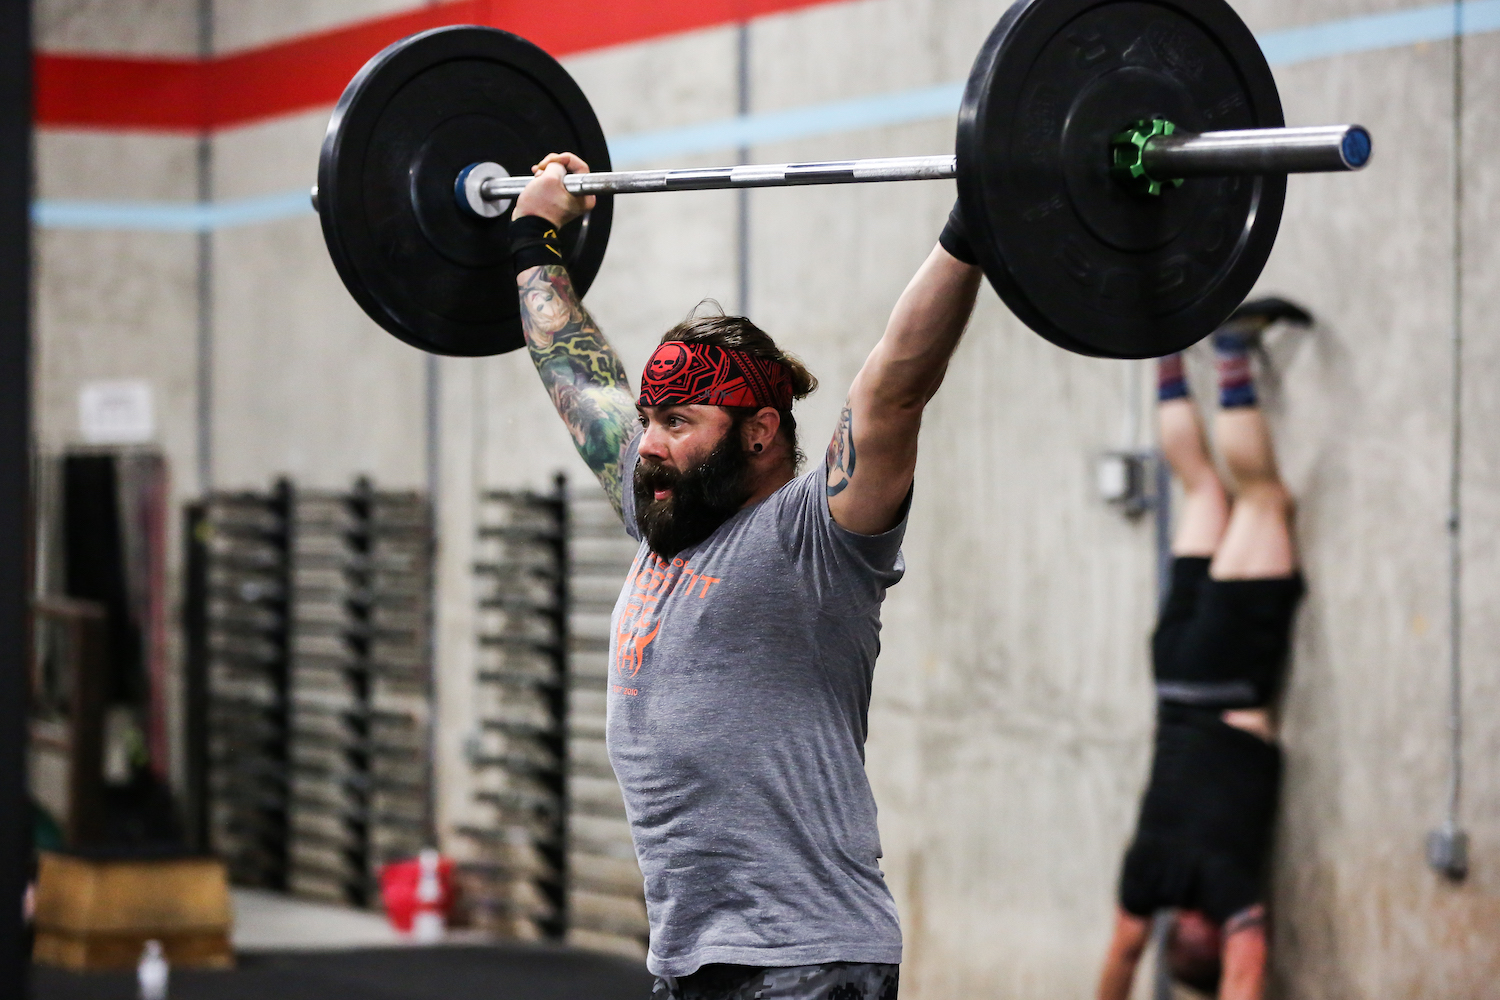 A man performing an olympic weightlifting movement.